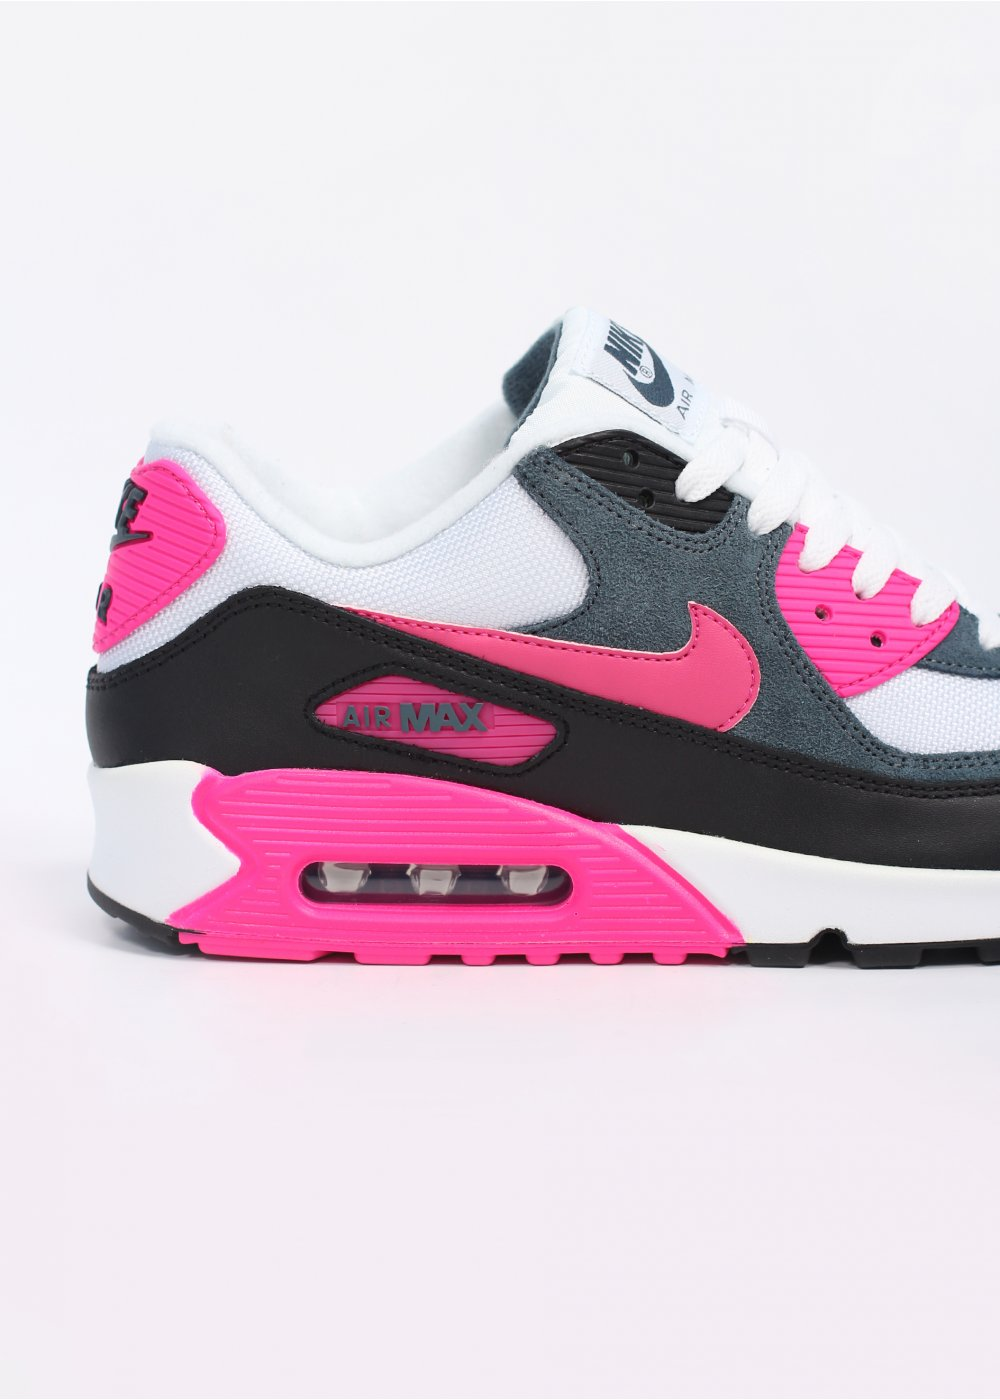 4177f4418d13 Air Max 90 Essential Trainers - White   Pink Foil   Black